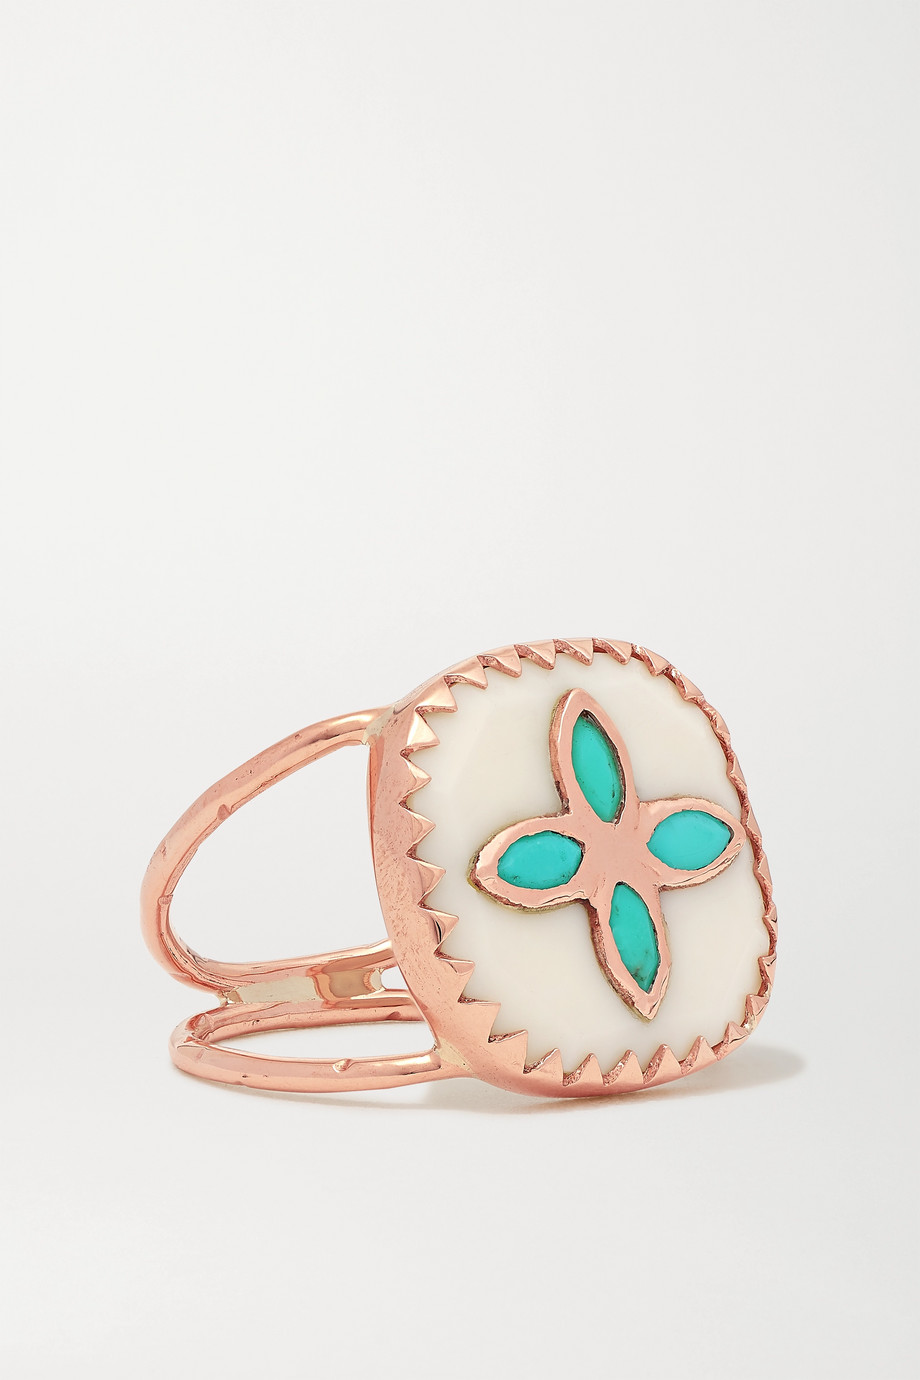 PASCALE MONVOISIN Bowie N°2 9-karat rose gold, resin and turquoise ring